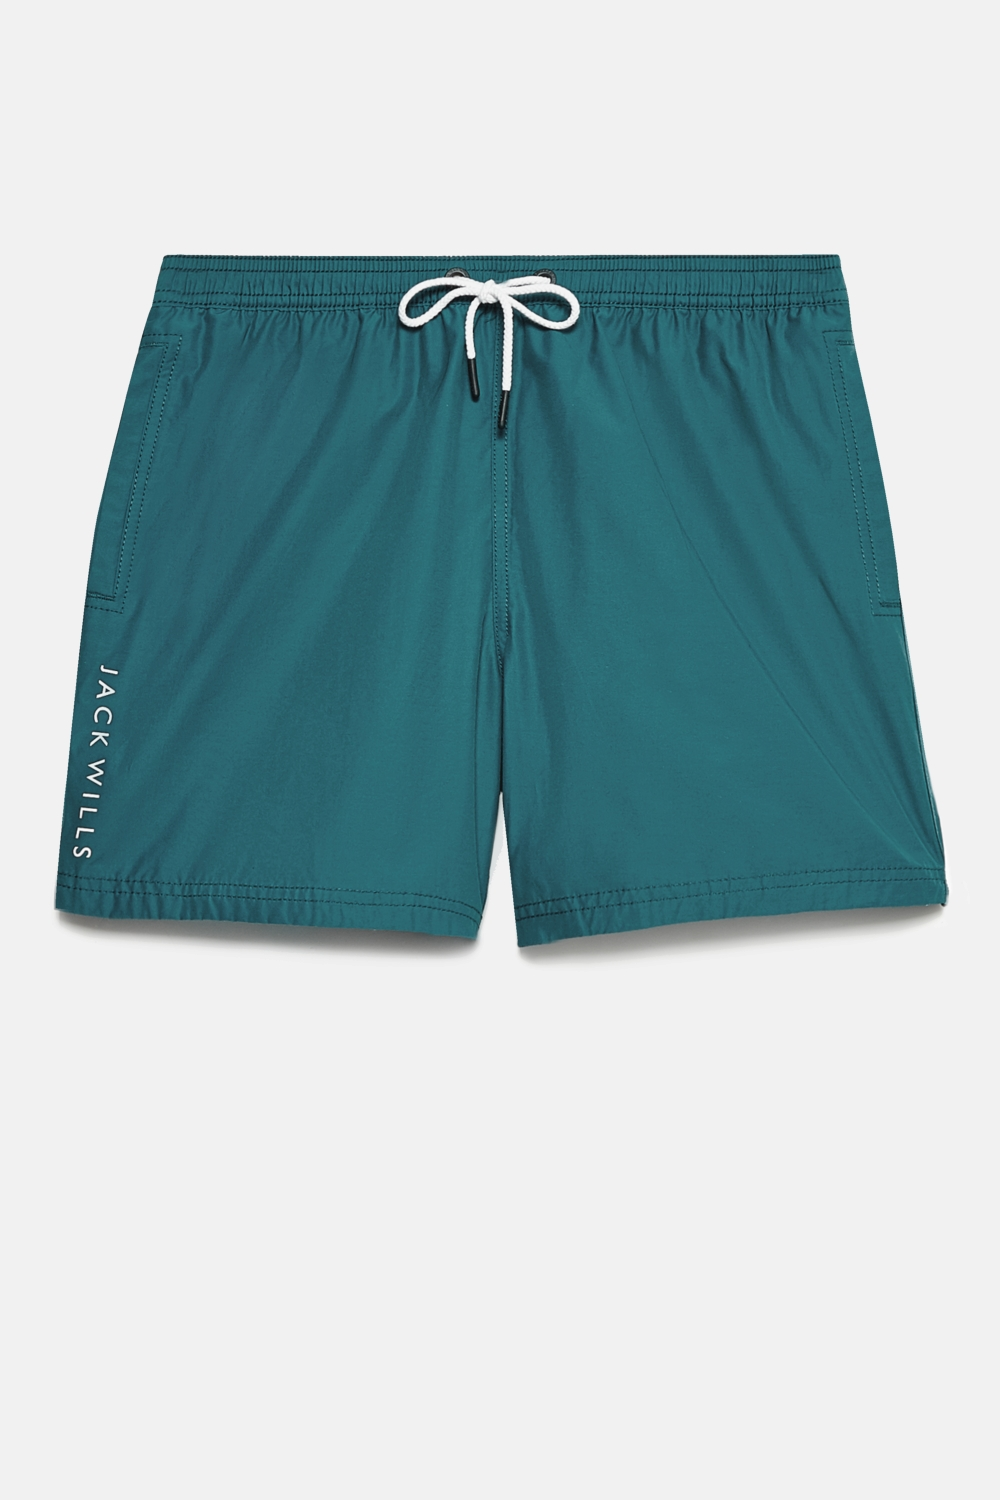 6269545fe1 BRANWELL SWIM SHORT. £39.95£15.98. Sorry, this item has just gone out of  stock. Our stylists will find you something similar if you sign up for  Thread.